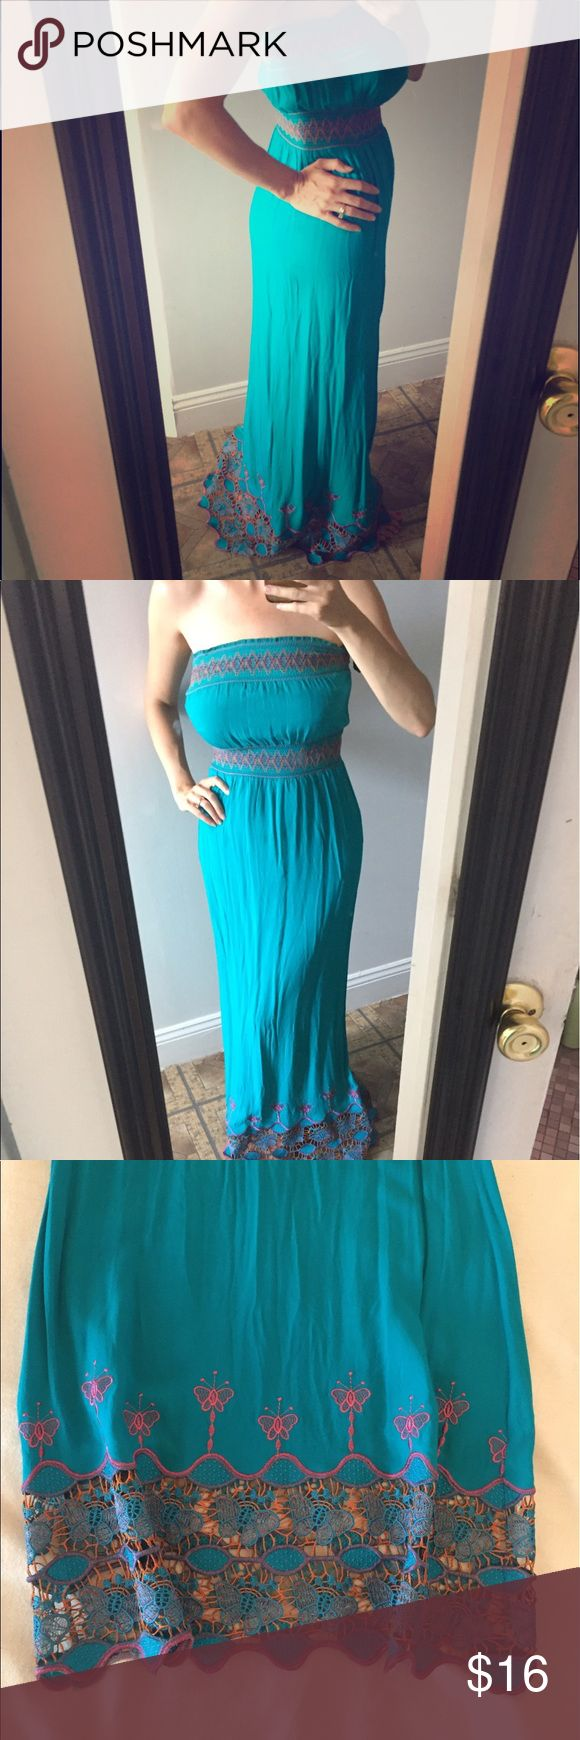 """Turquoise crochet twentyone brand maxi dress Small Turquoise fitted maxi dress with crochet detail on bodice and butterflies at the bottom. Super flattering but slightly too long for little ole me!.                                   Length - 48""""                                                                          Waist - 10"""" across stretches to 17"""" Forever 21 Dresses Maxi"""